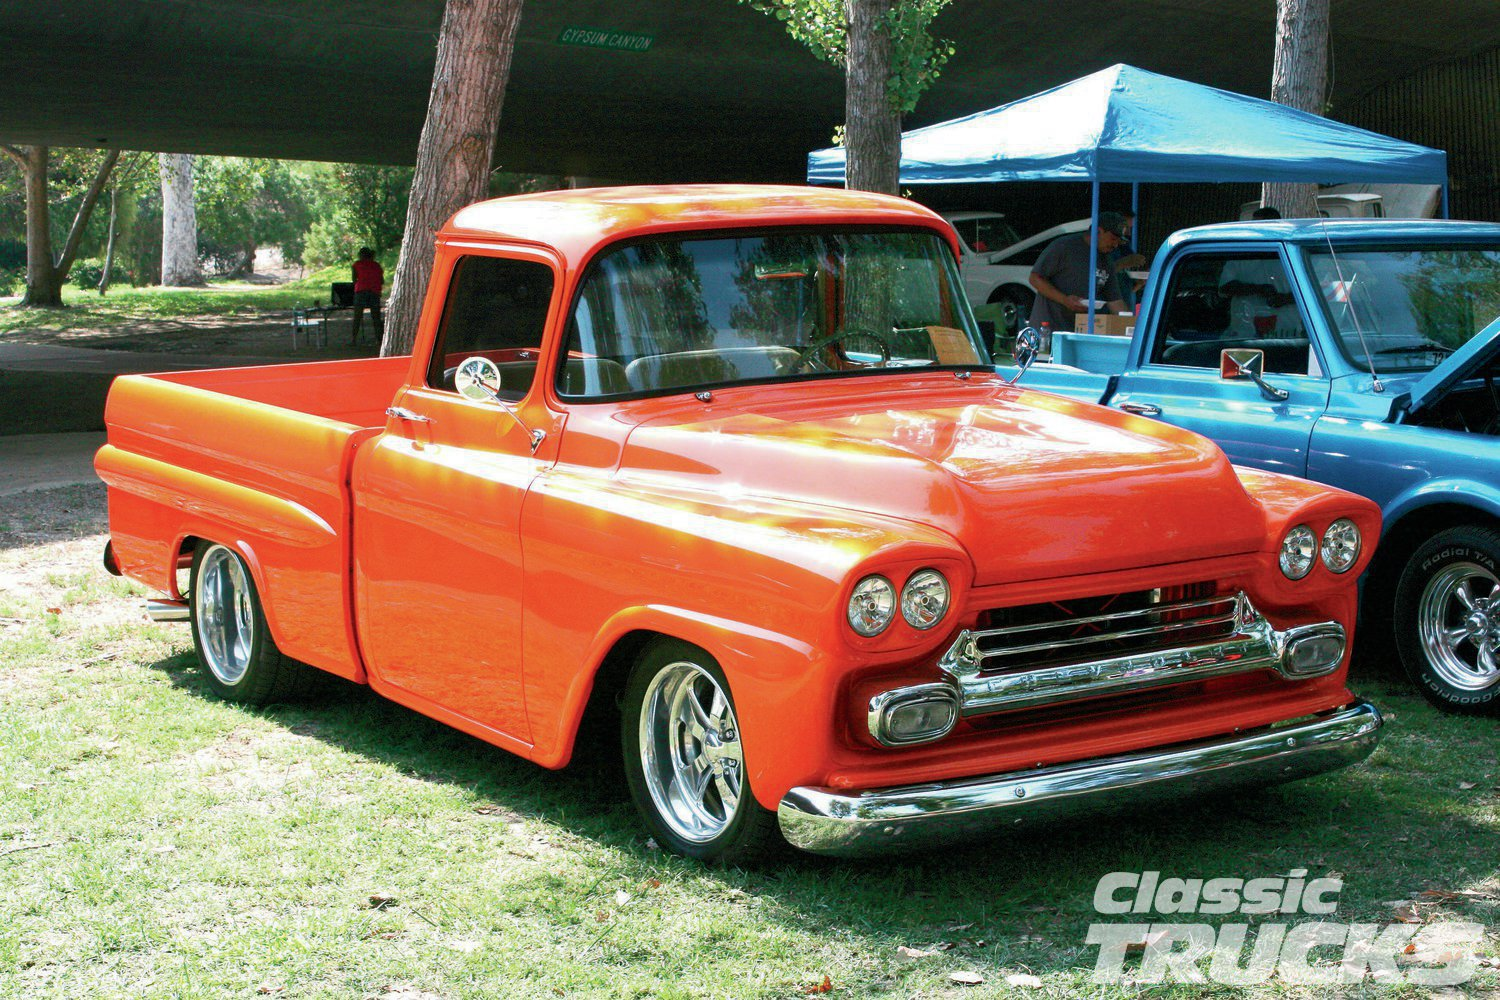 Craig Legacy's 1959 Apache's striking color and perfect stance made it quite a popular truck with the fans at the show.